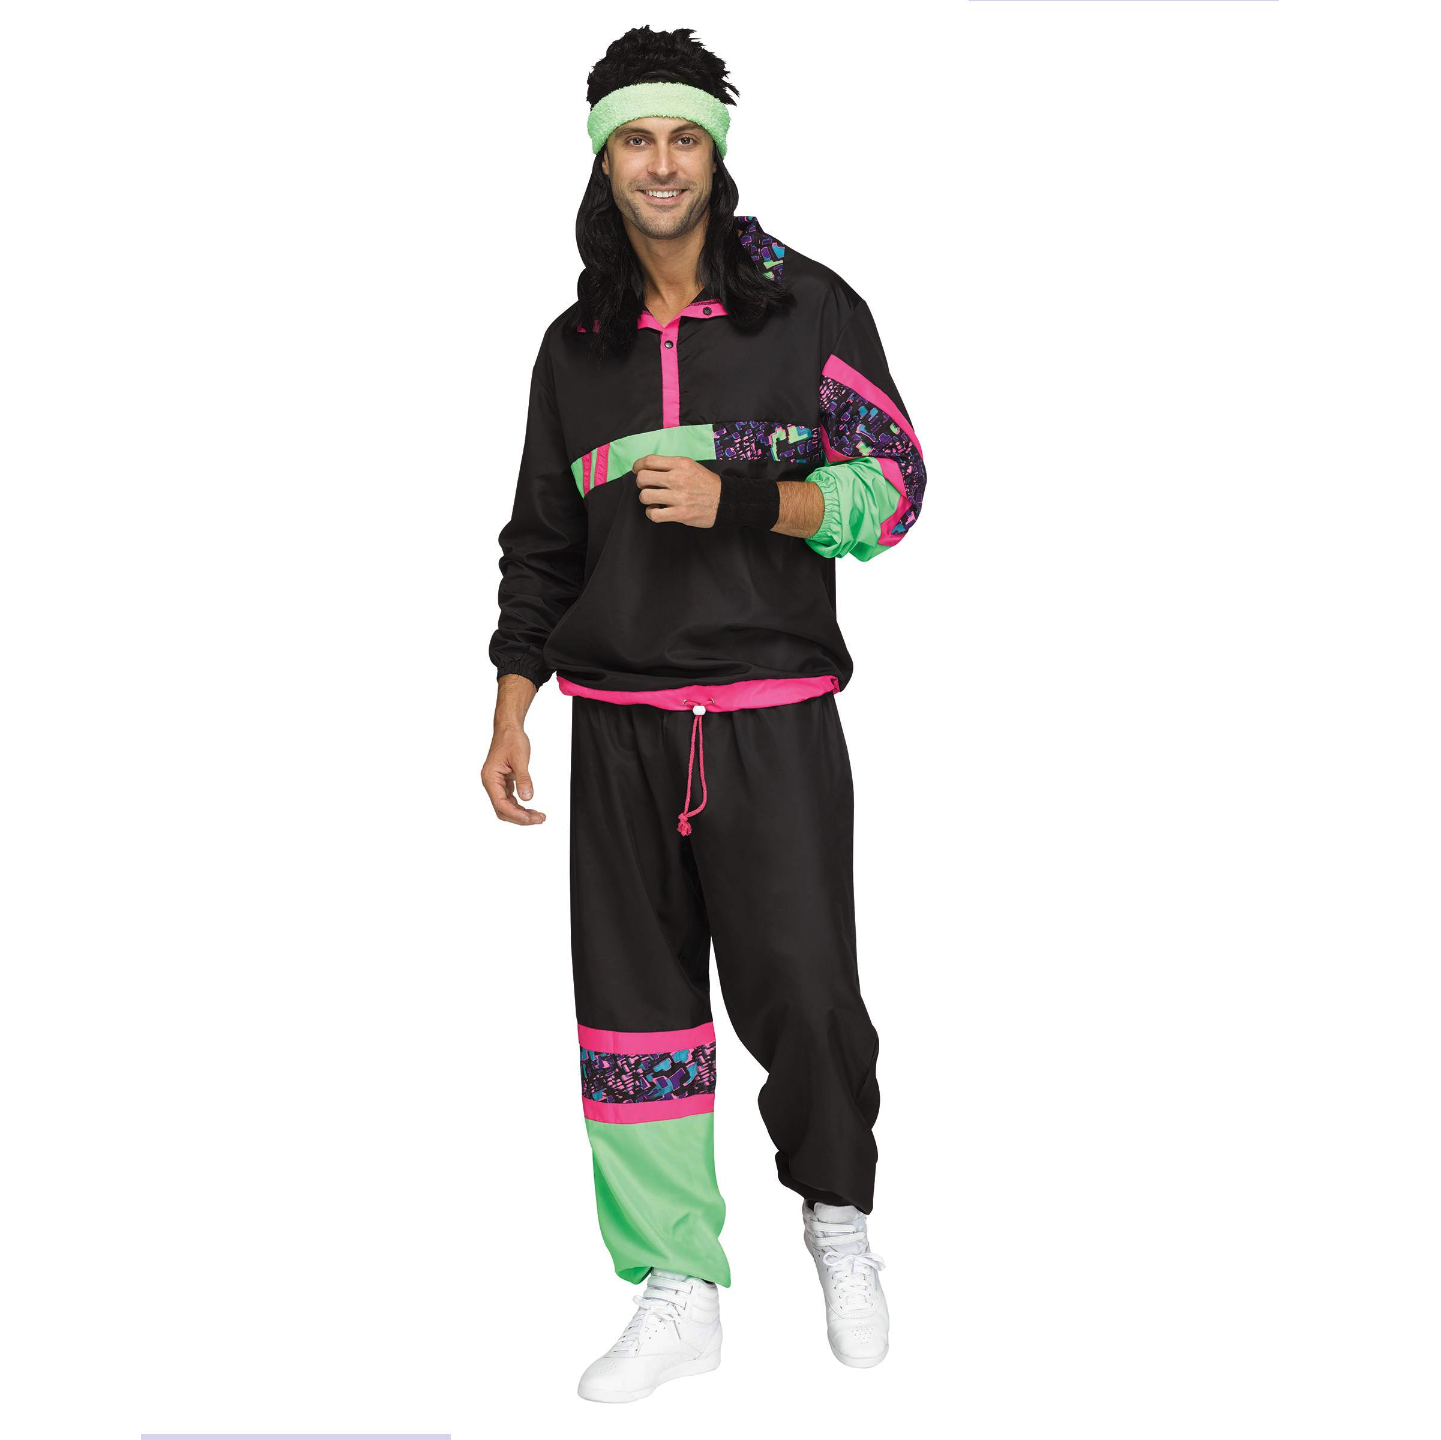 6c1296d4dcd3 25 Best 80s Costume Ideas for Halloween 2018 - Costumes Inspired by the  1980s